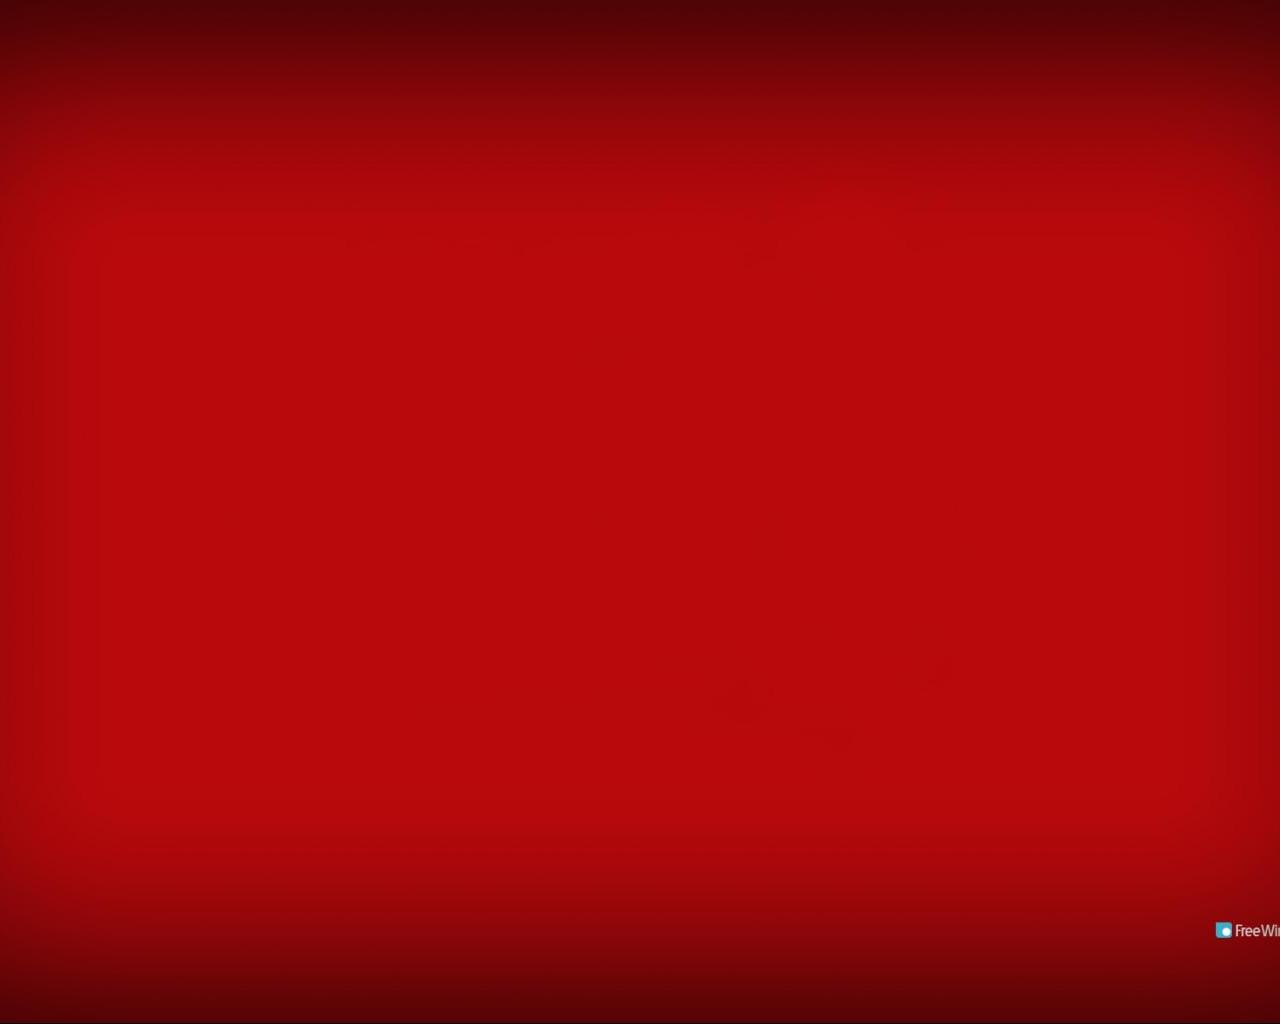 1280x1024 | Red Computer Wallpaper | Solid Red Wallpaper